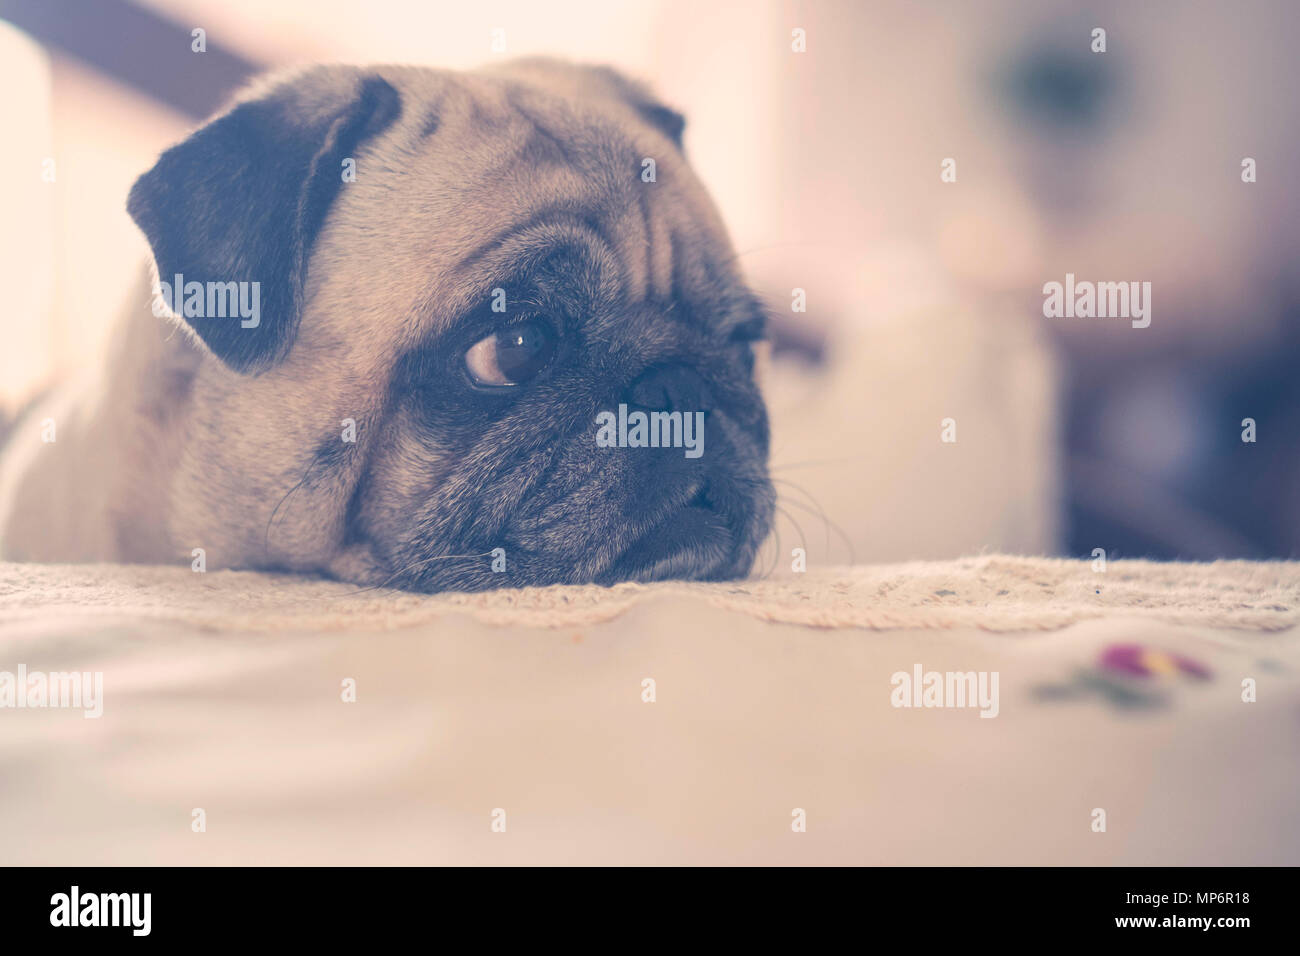 sweet nice pug dog with background defocused. brown tones and vintage style. eyes looking at his side with curiosity. - Stock Image